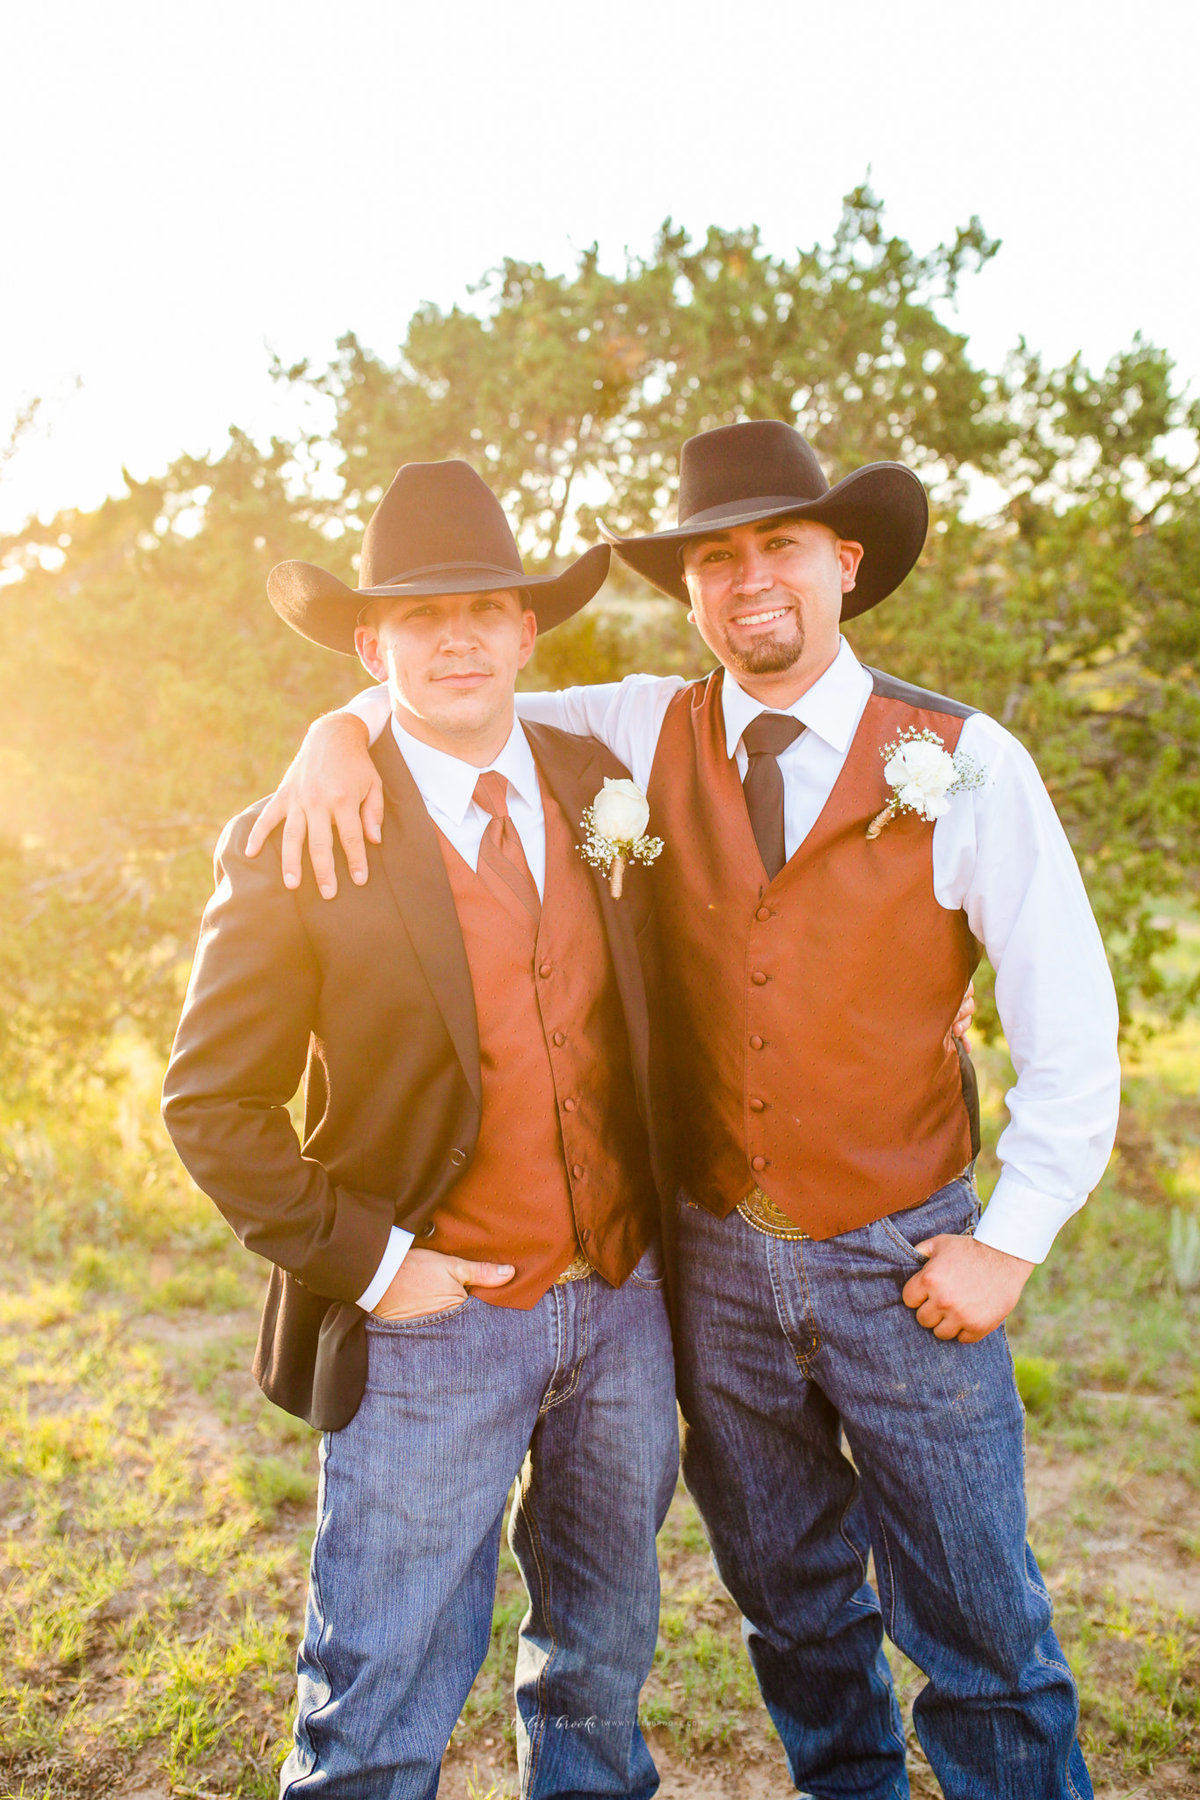 Edgewood-New-Mexico_Country-Wedding-Photographer_www.tylerbrooke.com_Kate-Kauffman-29-of-35-1